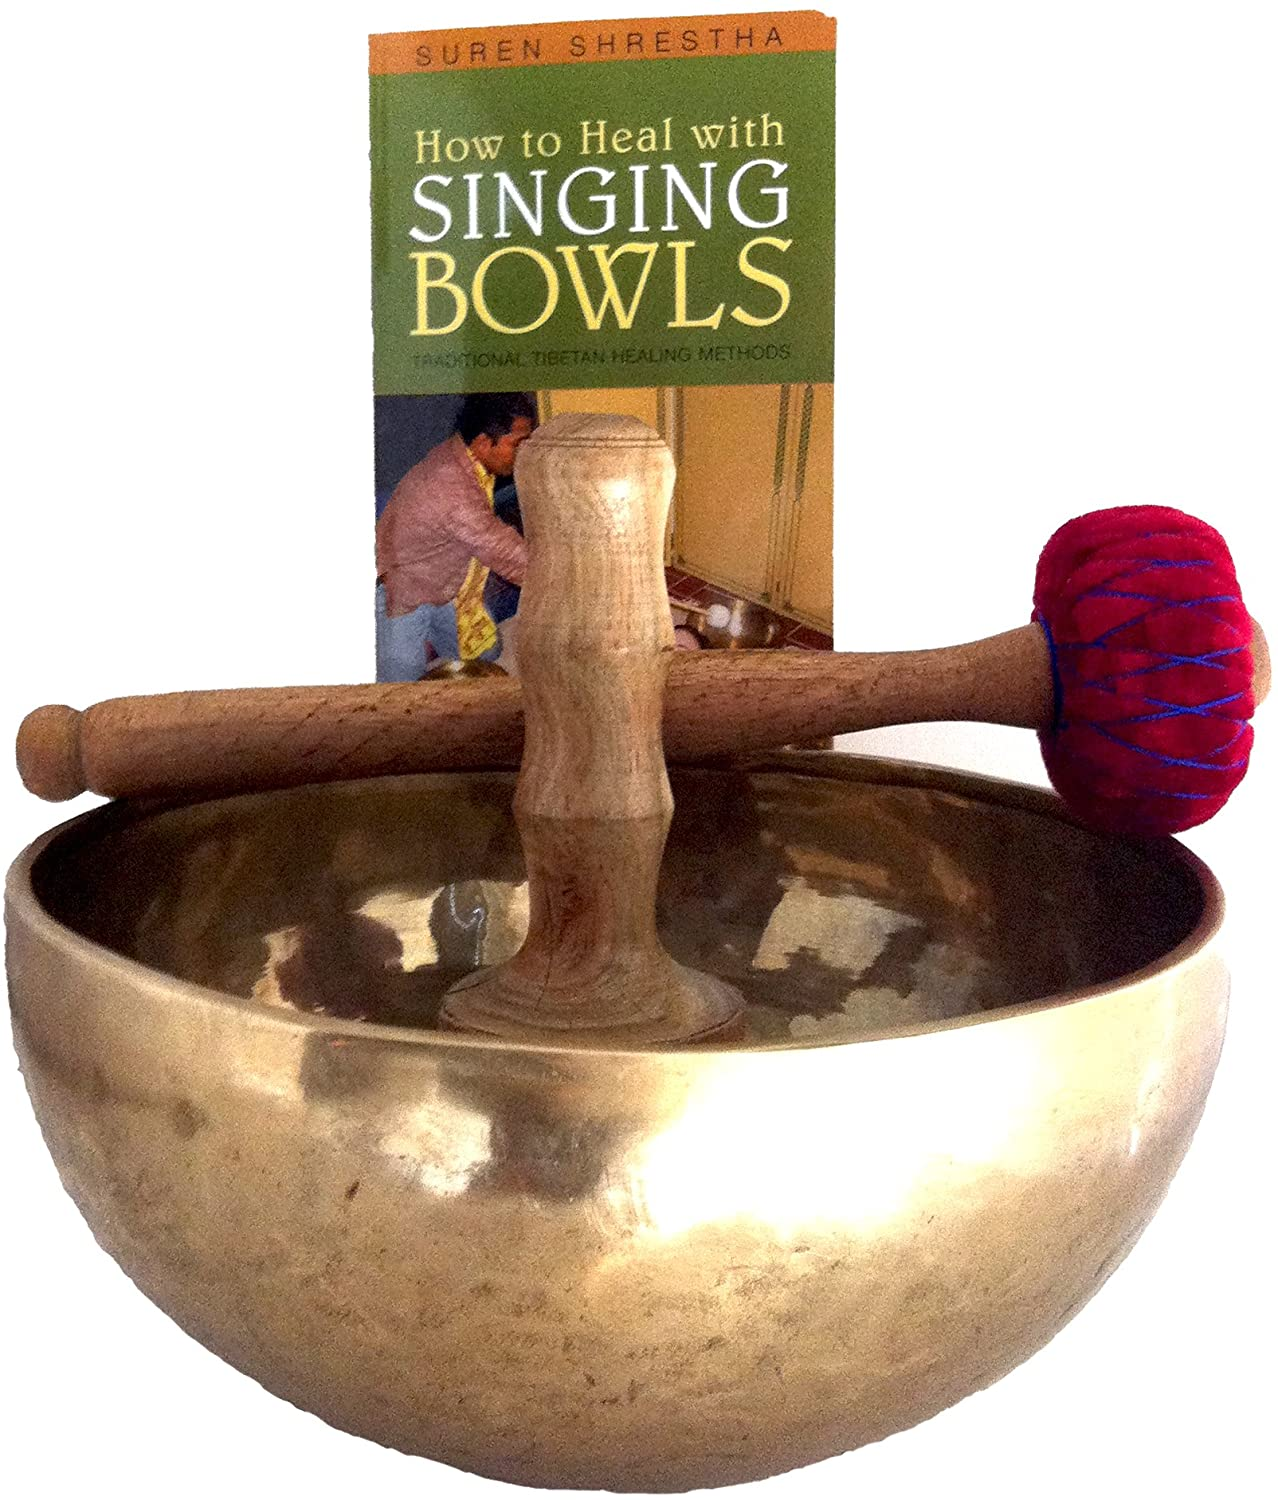 Nepal Singing Bowl - Large Mother Bowl in C Root Chakra with How to Heal with Singing Bowls Book